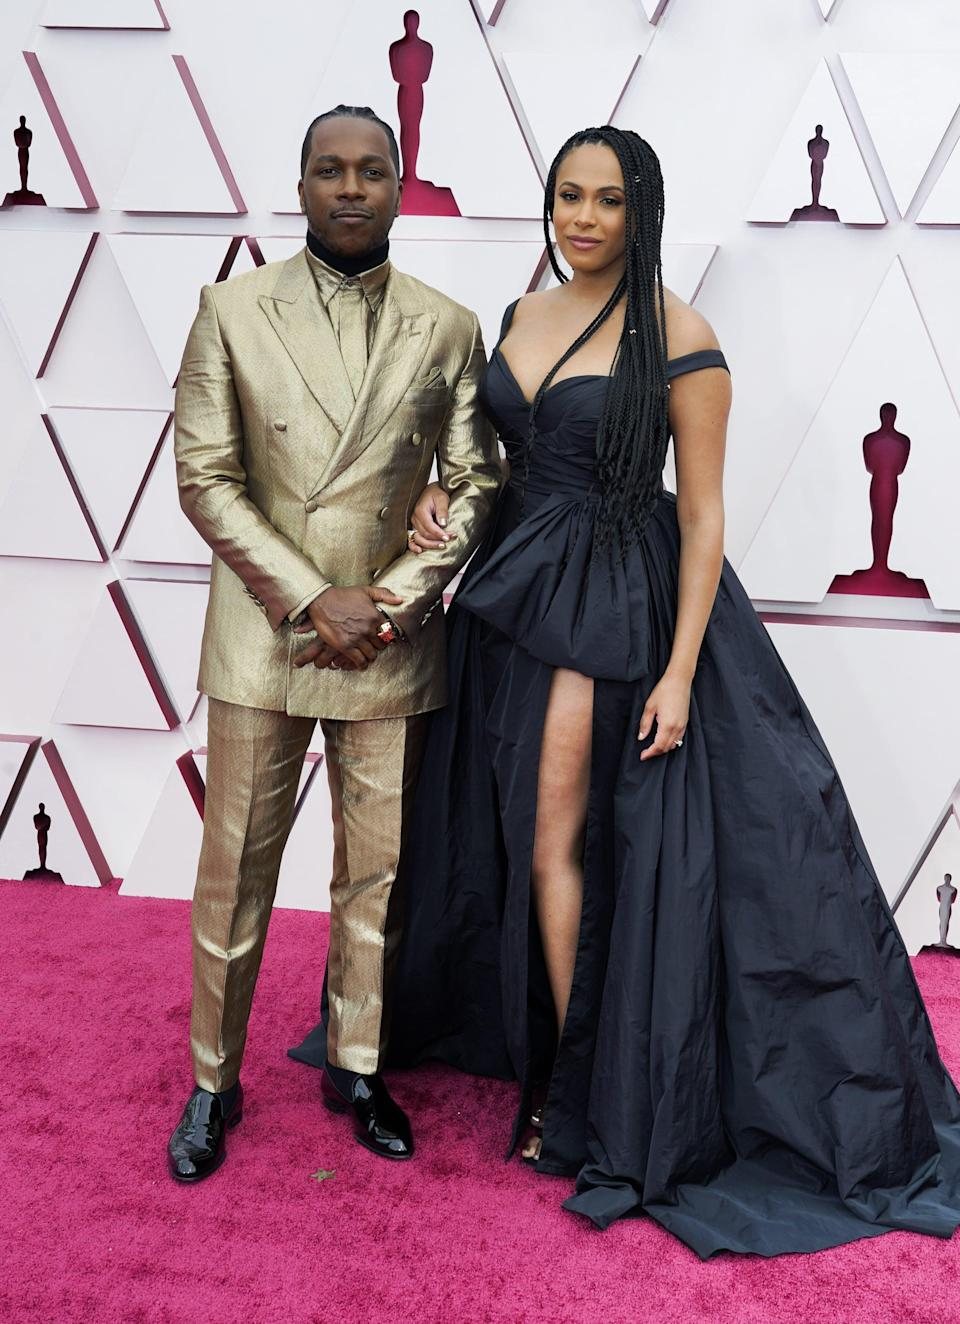 <p>Leslie Odom Jr. is wearing a shiny gold Brioni suit with a Cartier and Omega timepiece. Nicolette Robinson is wearing Zuhair Murad.</p>